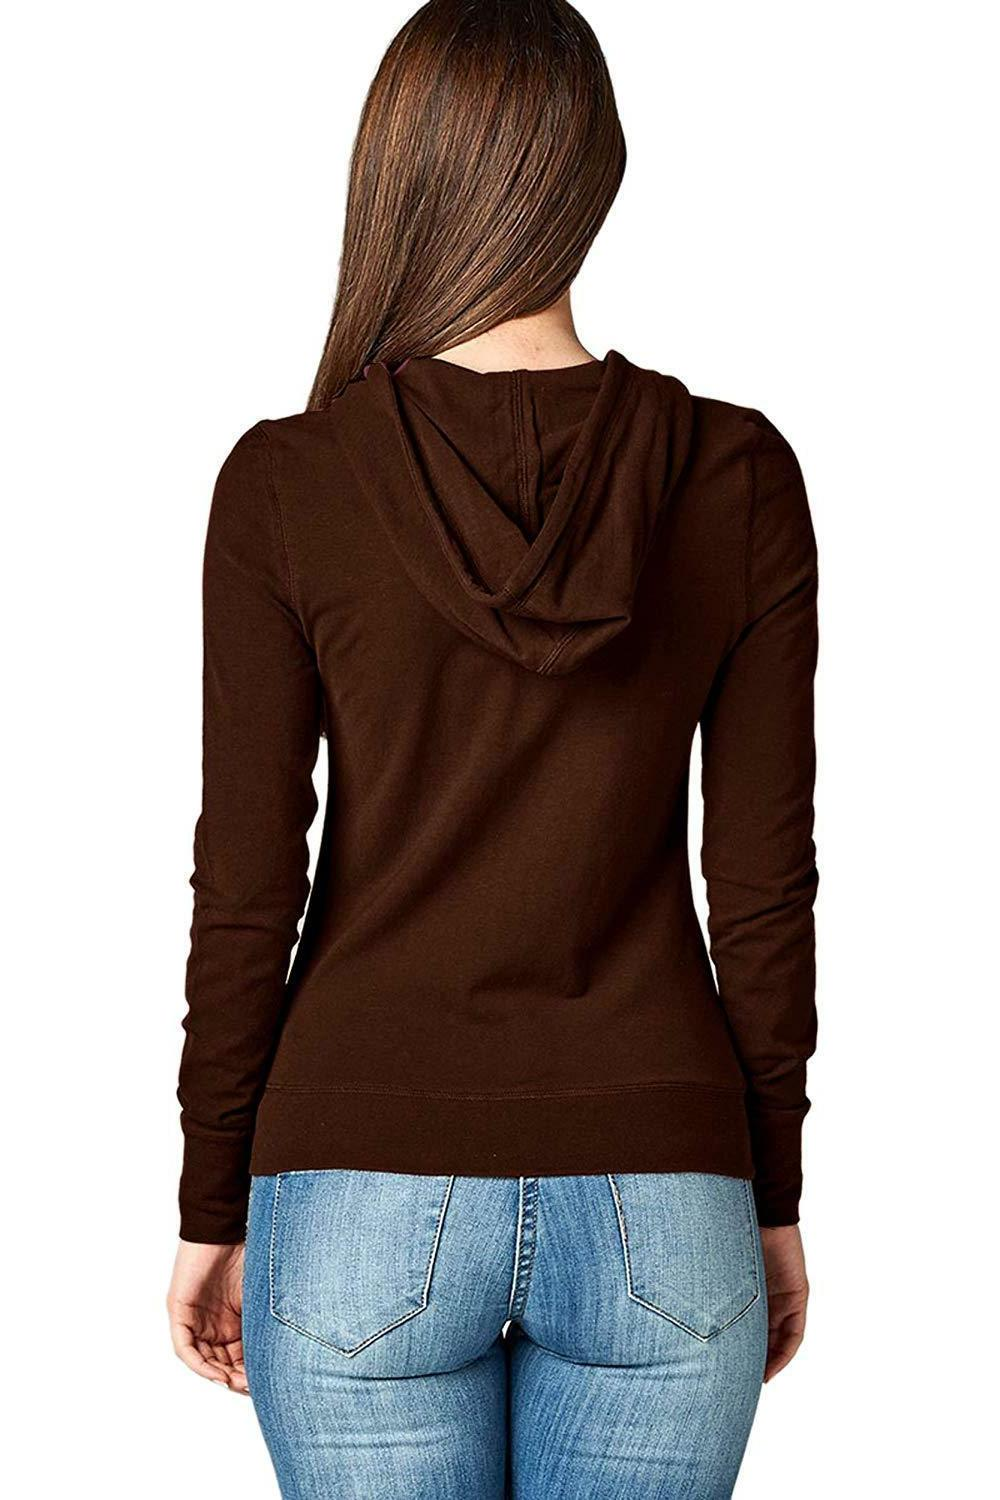 TL Women's Comfy Warm Knitted Casual Zip-Up Hoodie Jackets